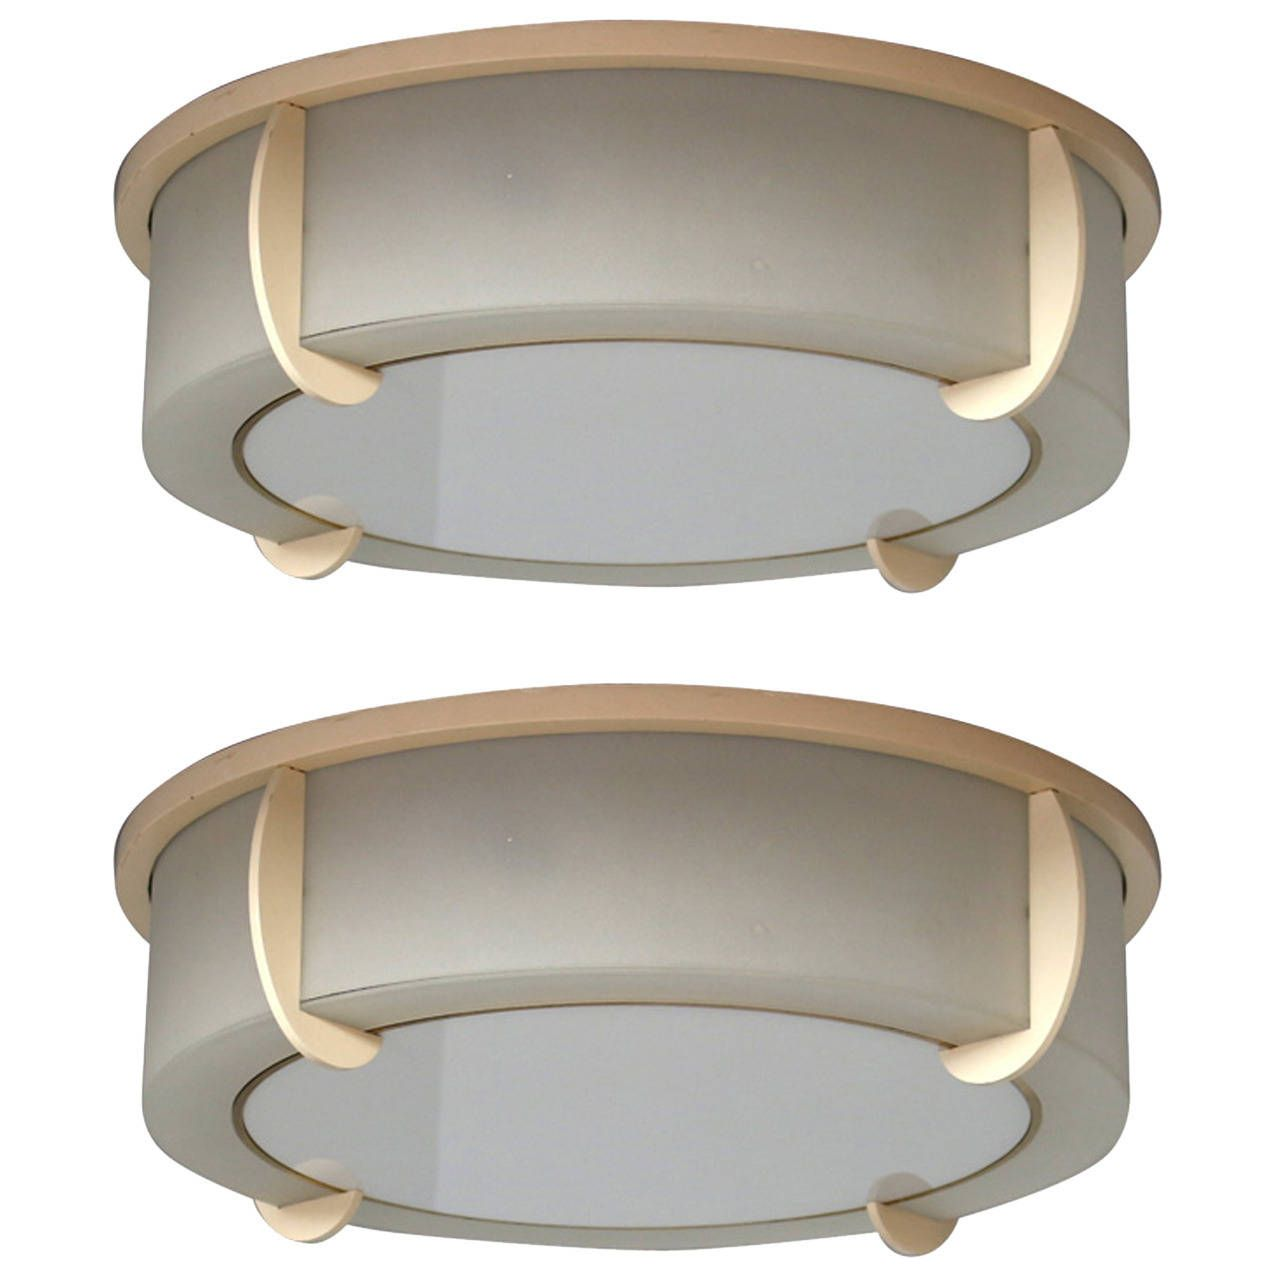 fine french art deco lacquered metal and glass flush mounts by